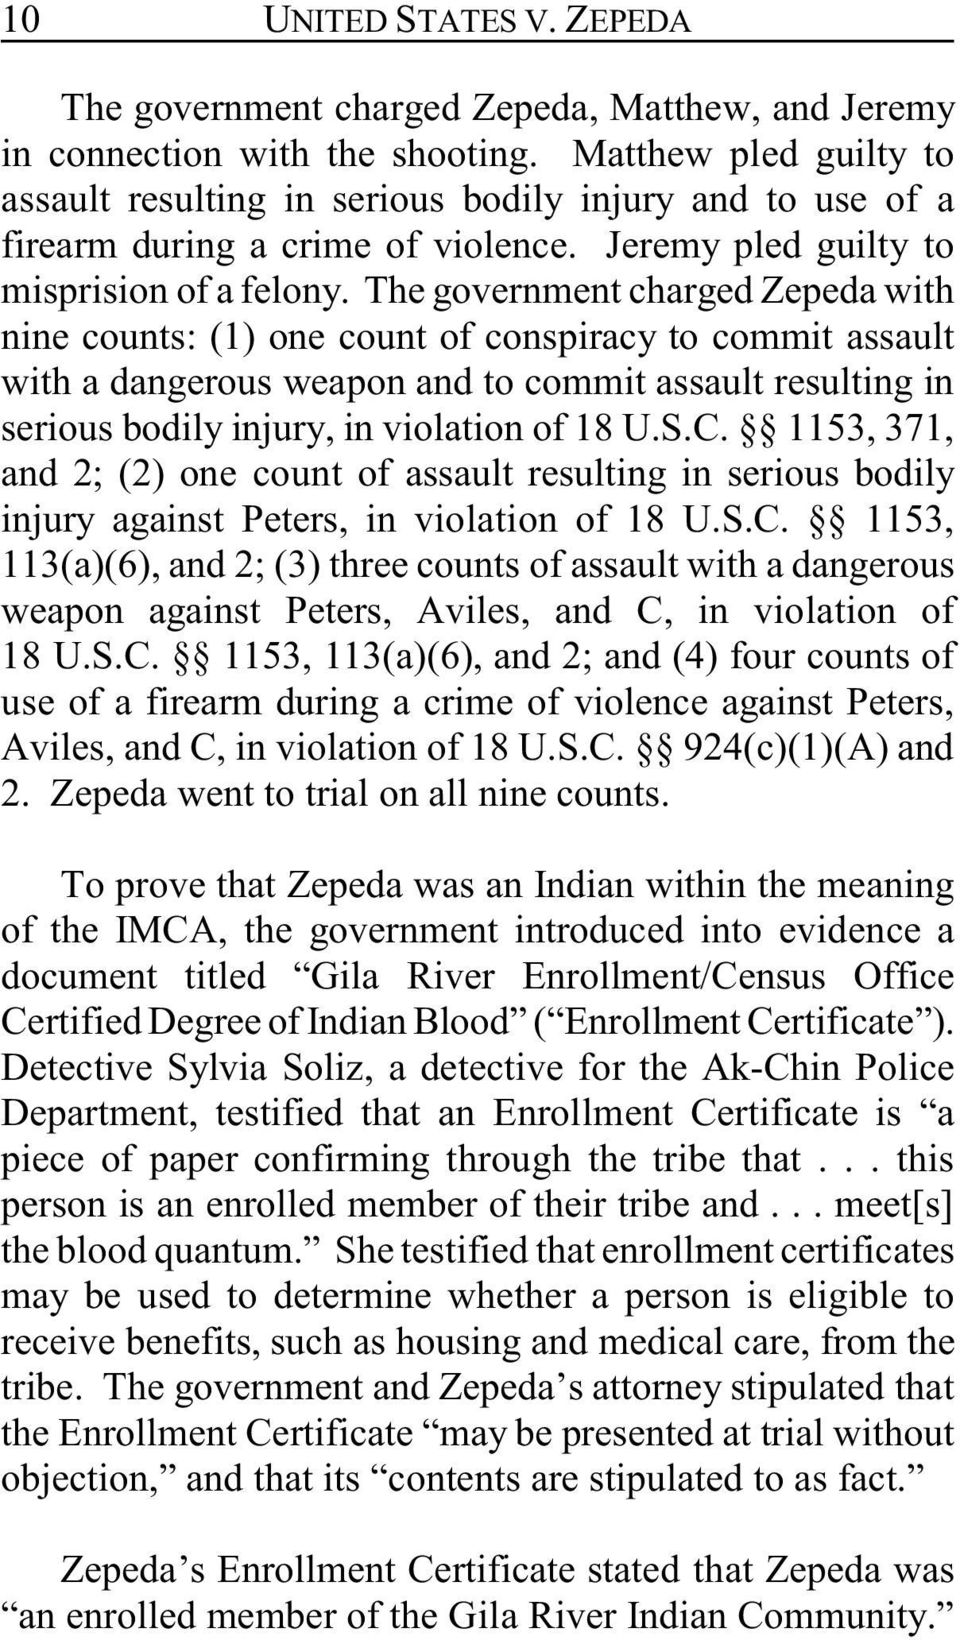 The government charged Zepeda with nine counts: (1) one count of conspiracy to commit assault with a dangerous weapon and to commit assault resulting in serious bodily injury, in violation of 18 U.S.